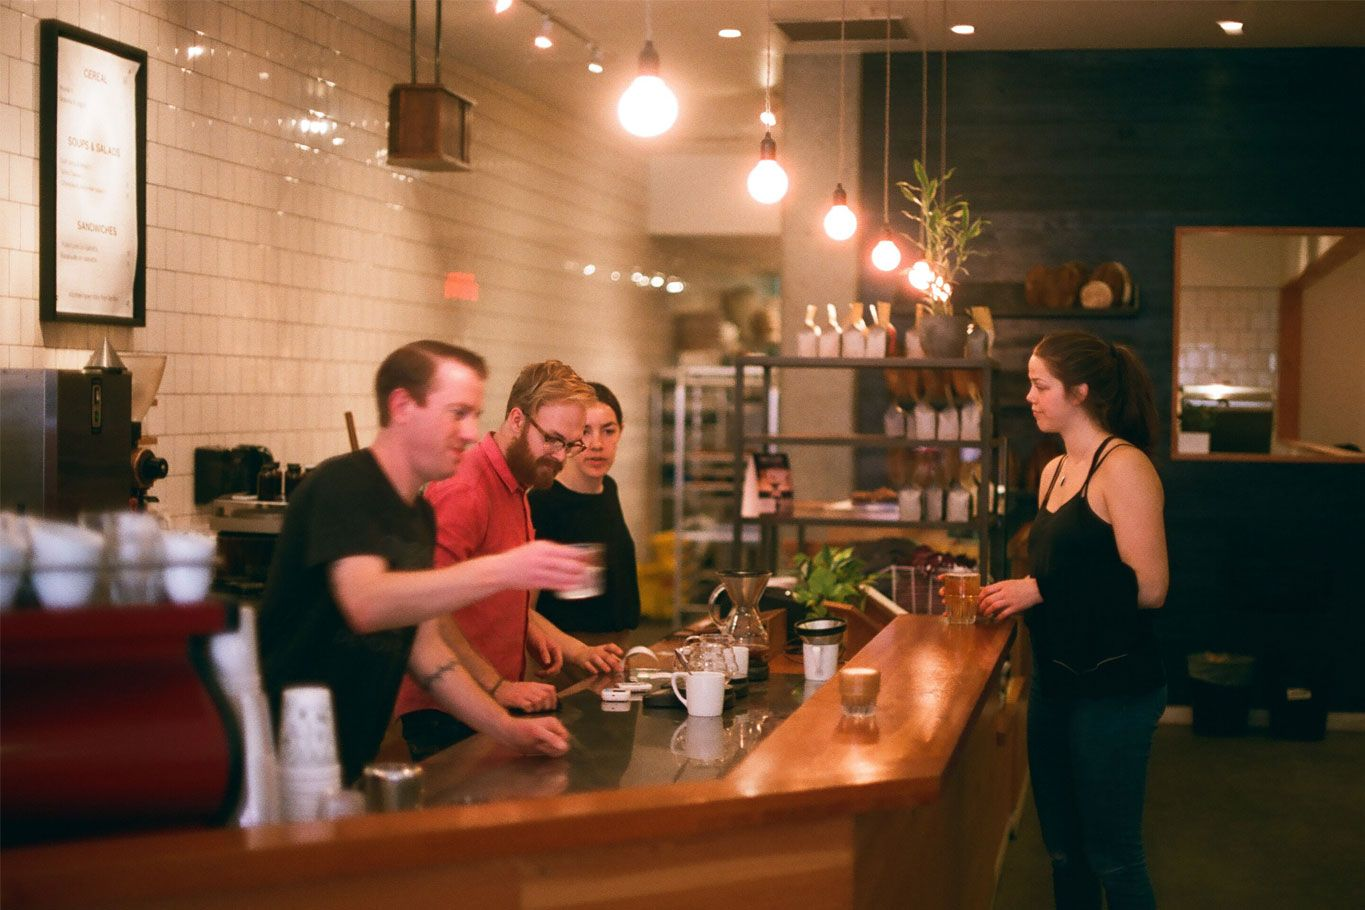 6 Ways to Strengthen Your Weak Restaurant Culture While Boosting Sales